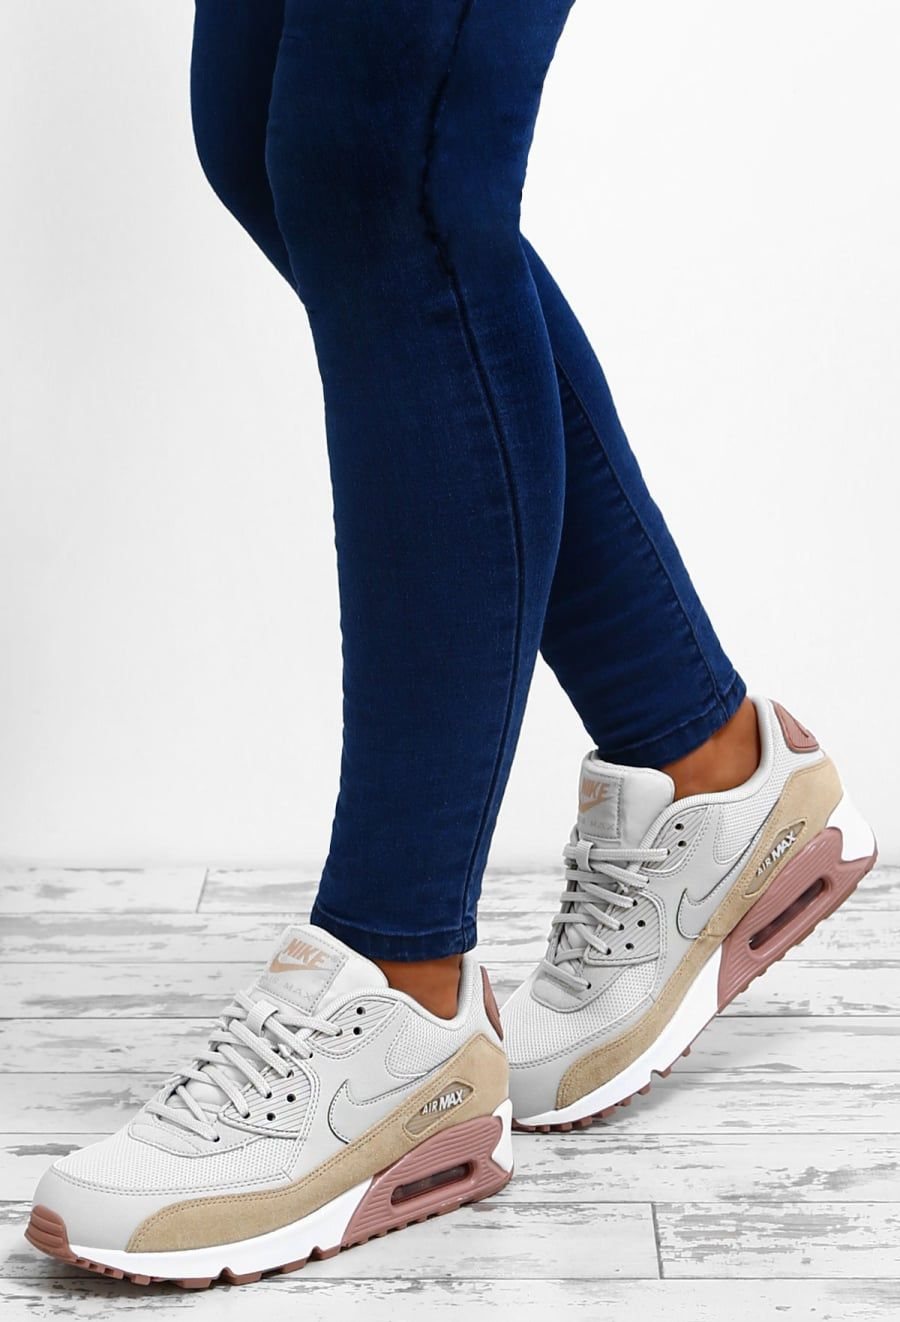 Nike Air Max 90 White Multi Trainers | Sapatos, Tenis e Saltos